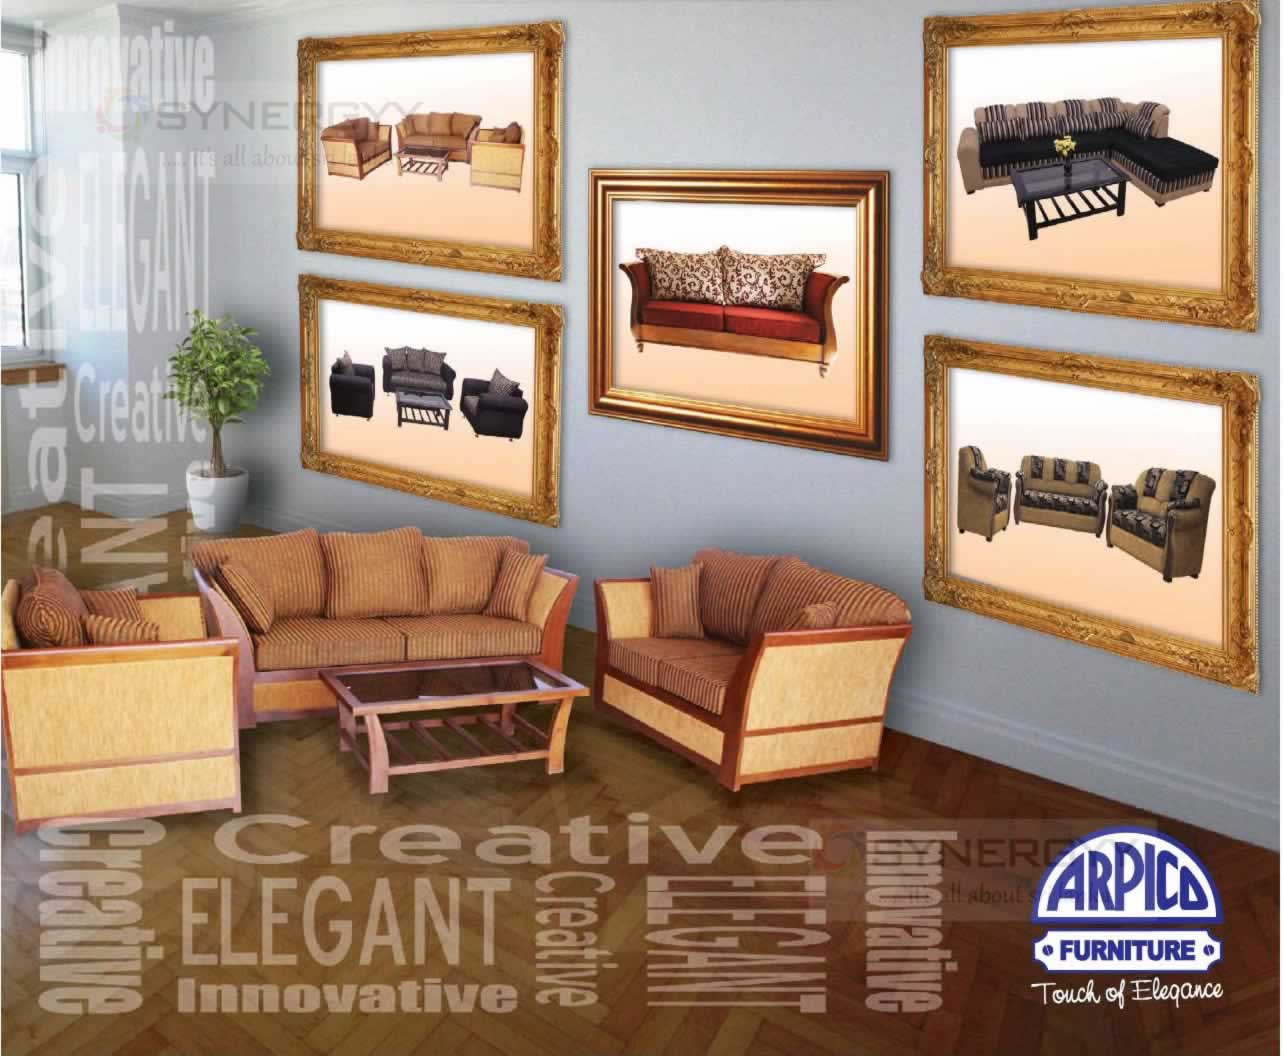 Furniture Prices and Discounts in Colombo   Arpico Furniture. Furniture Prices and Discounts in Colombo   Arpico Furniture